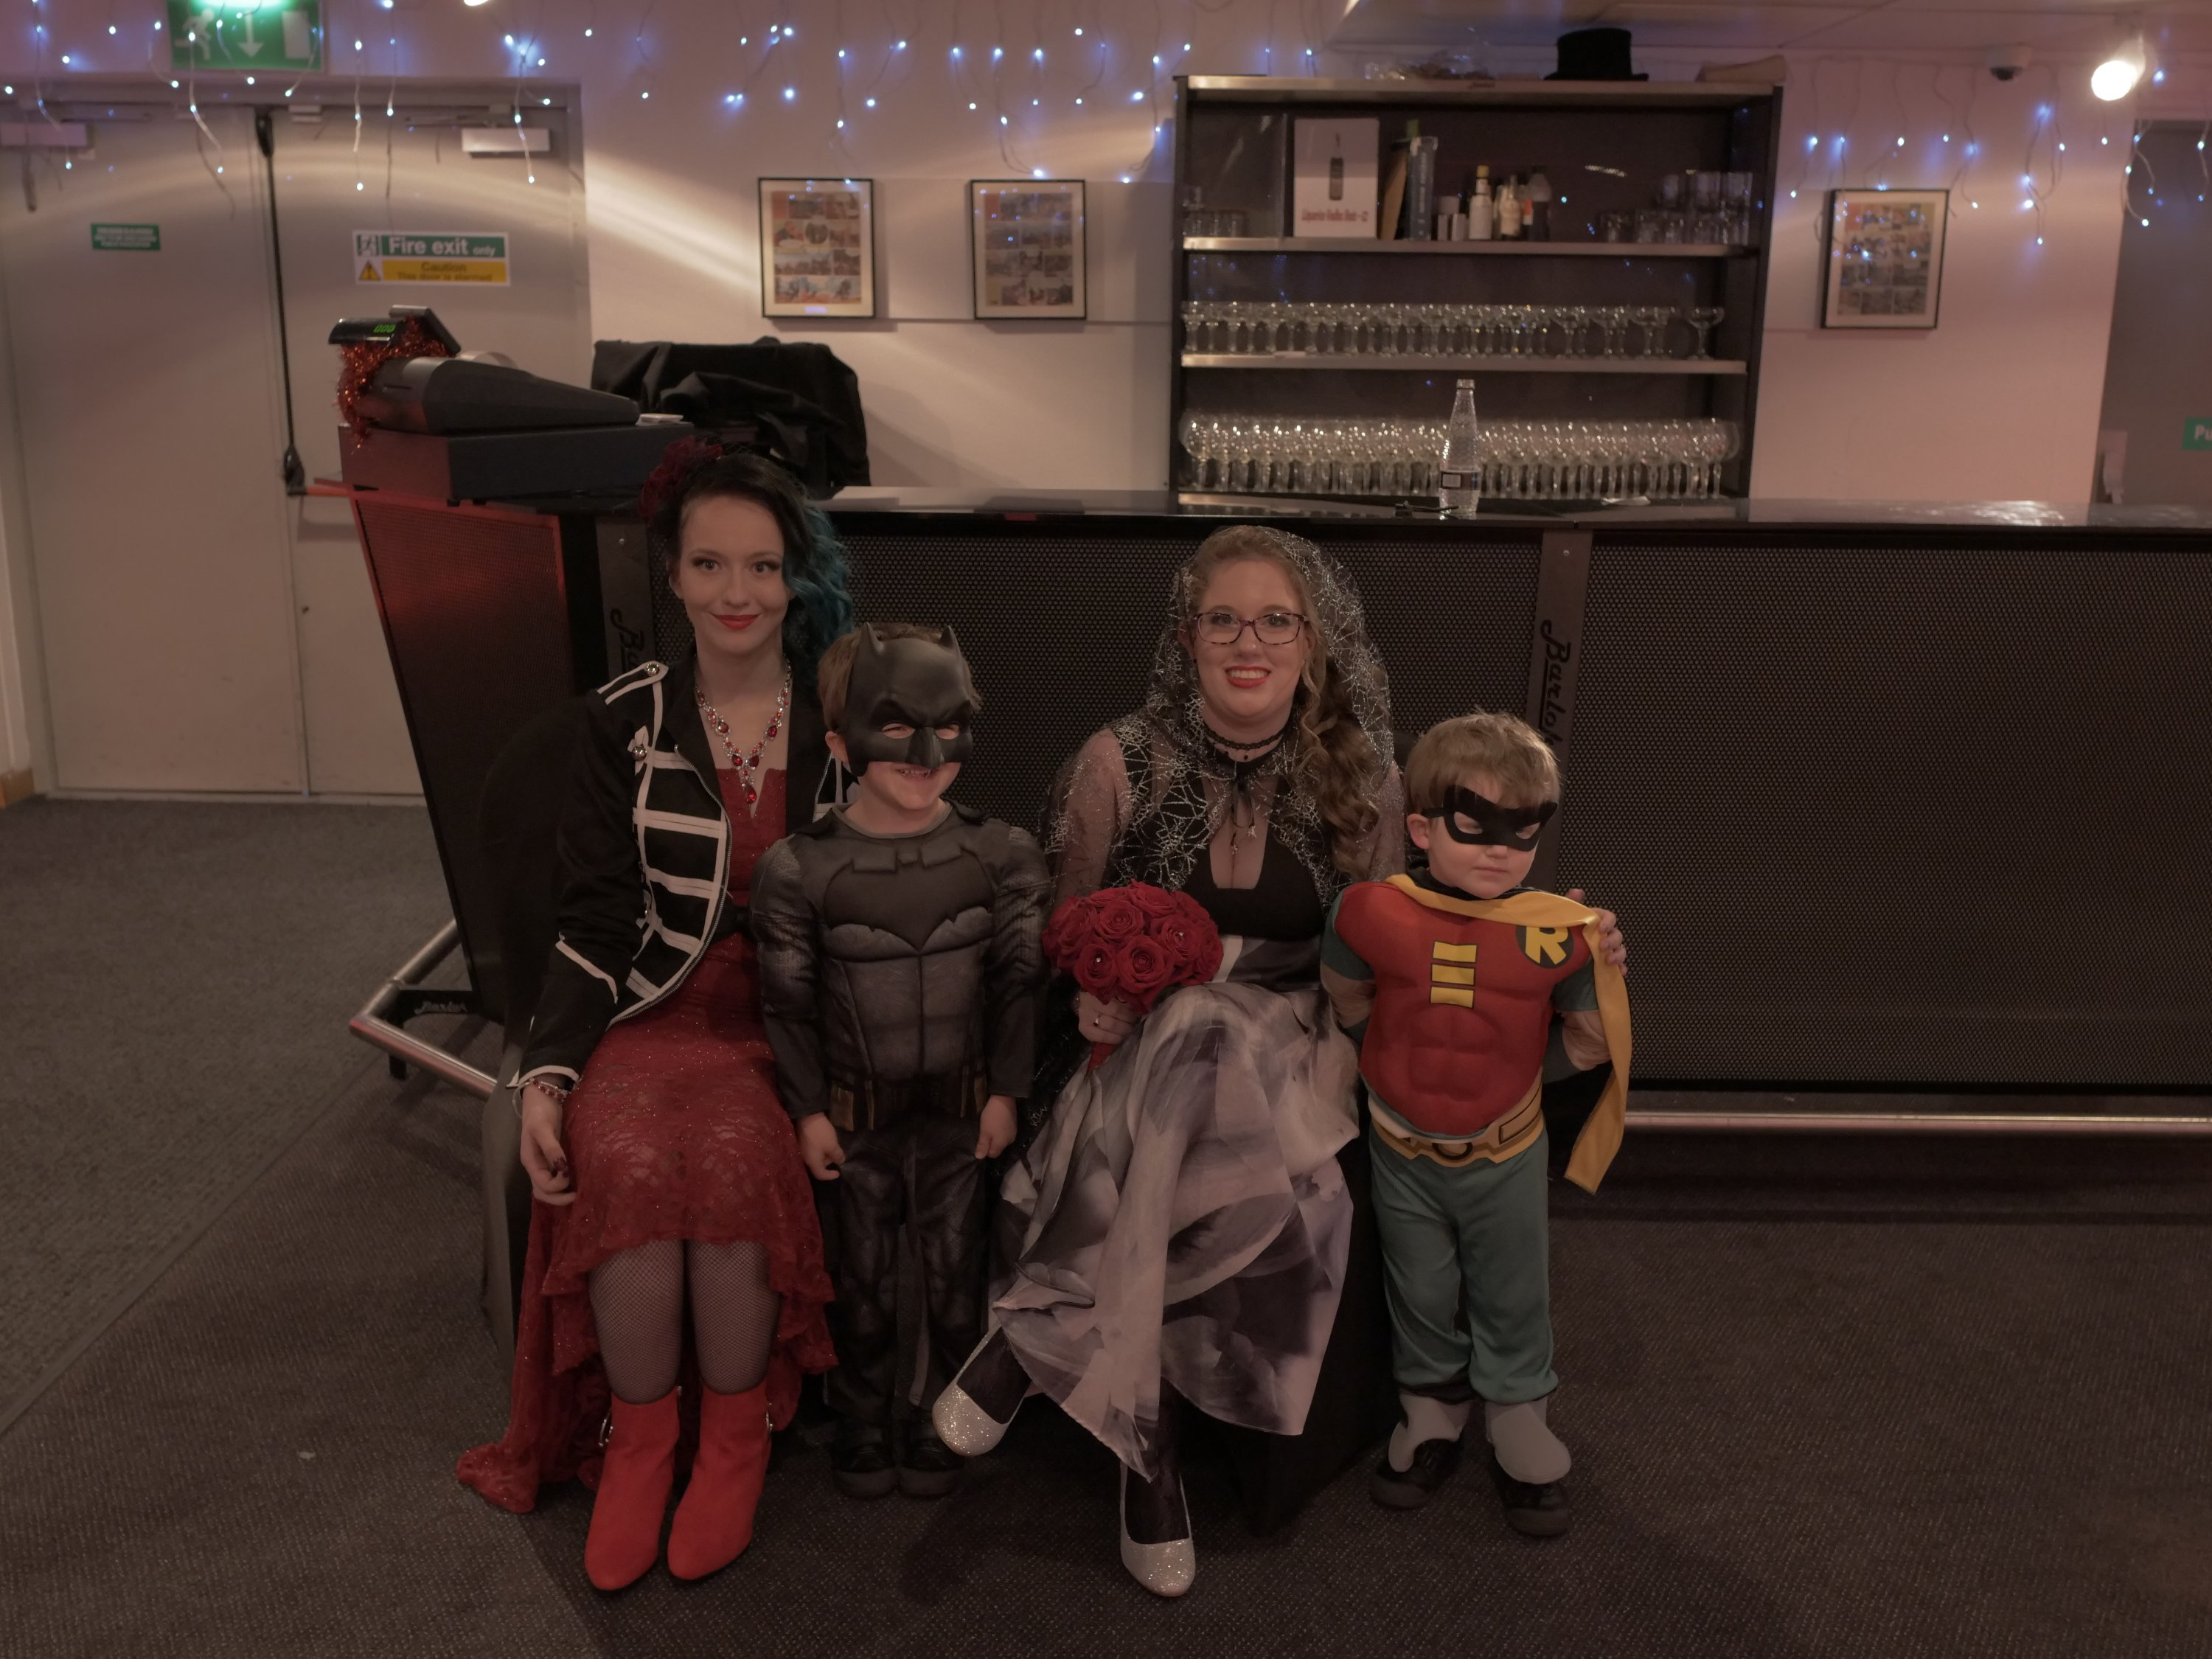 Me & my bridesmaid sat with my two page boys, who were dressed as Batman & Robin.